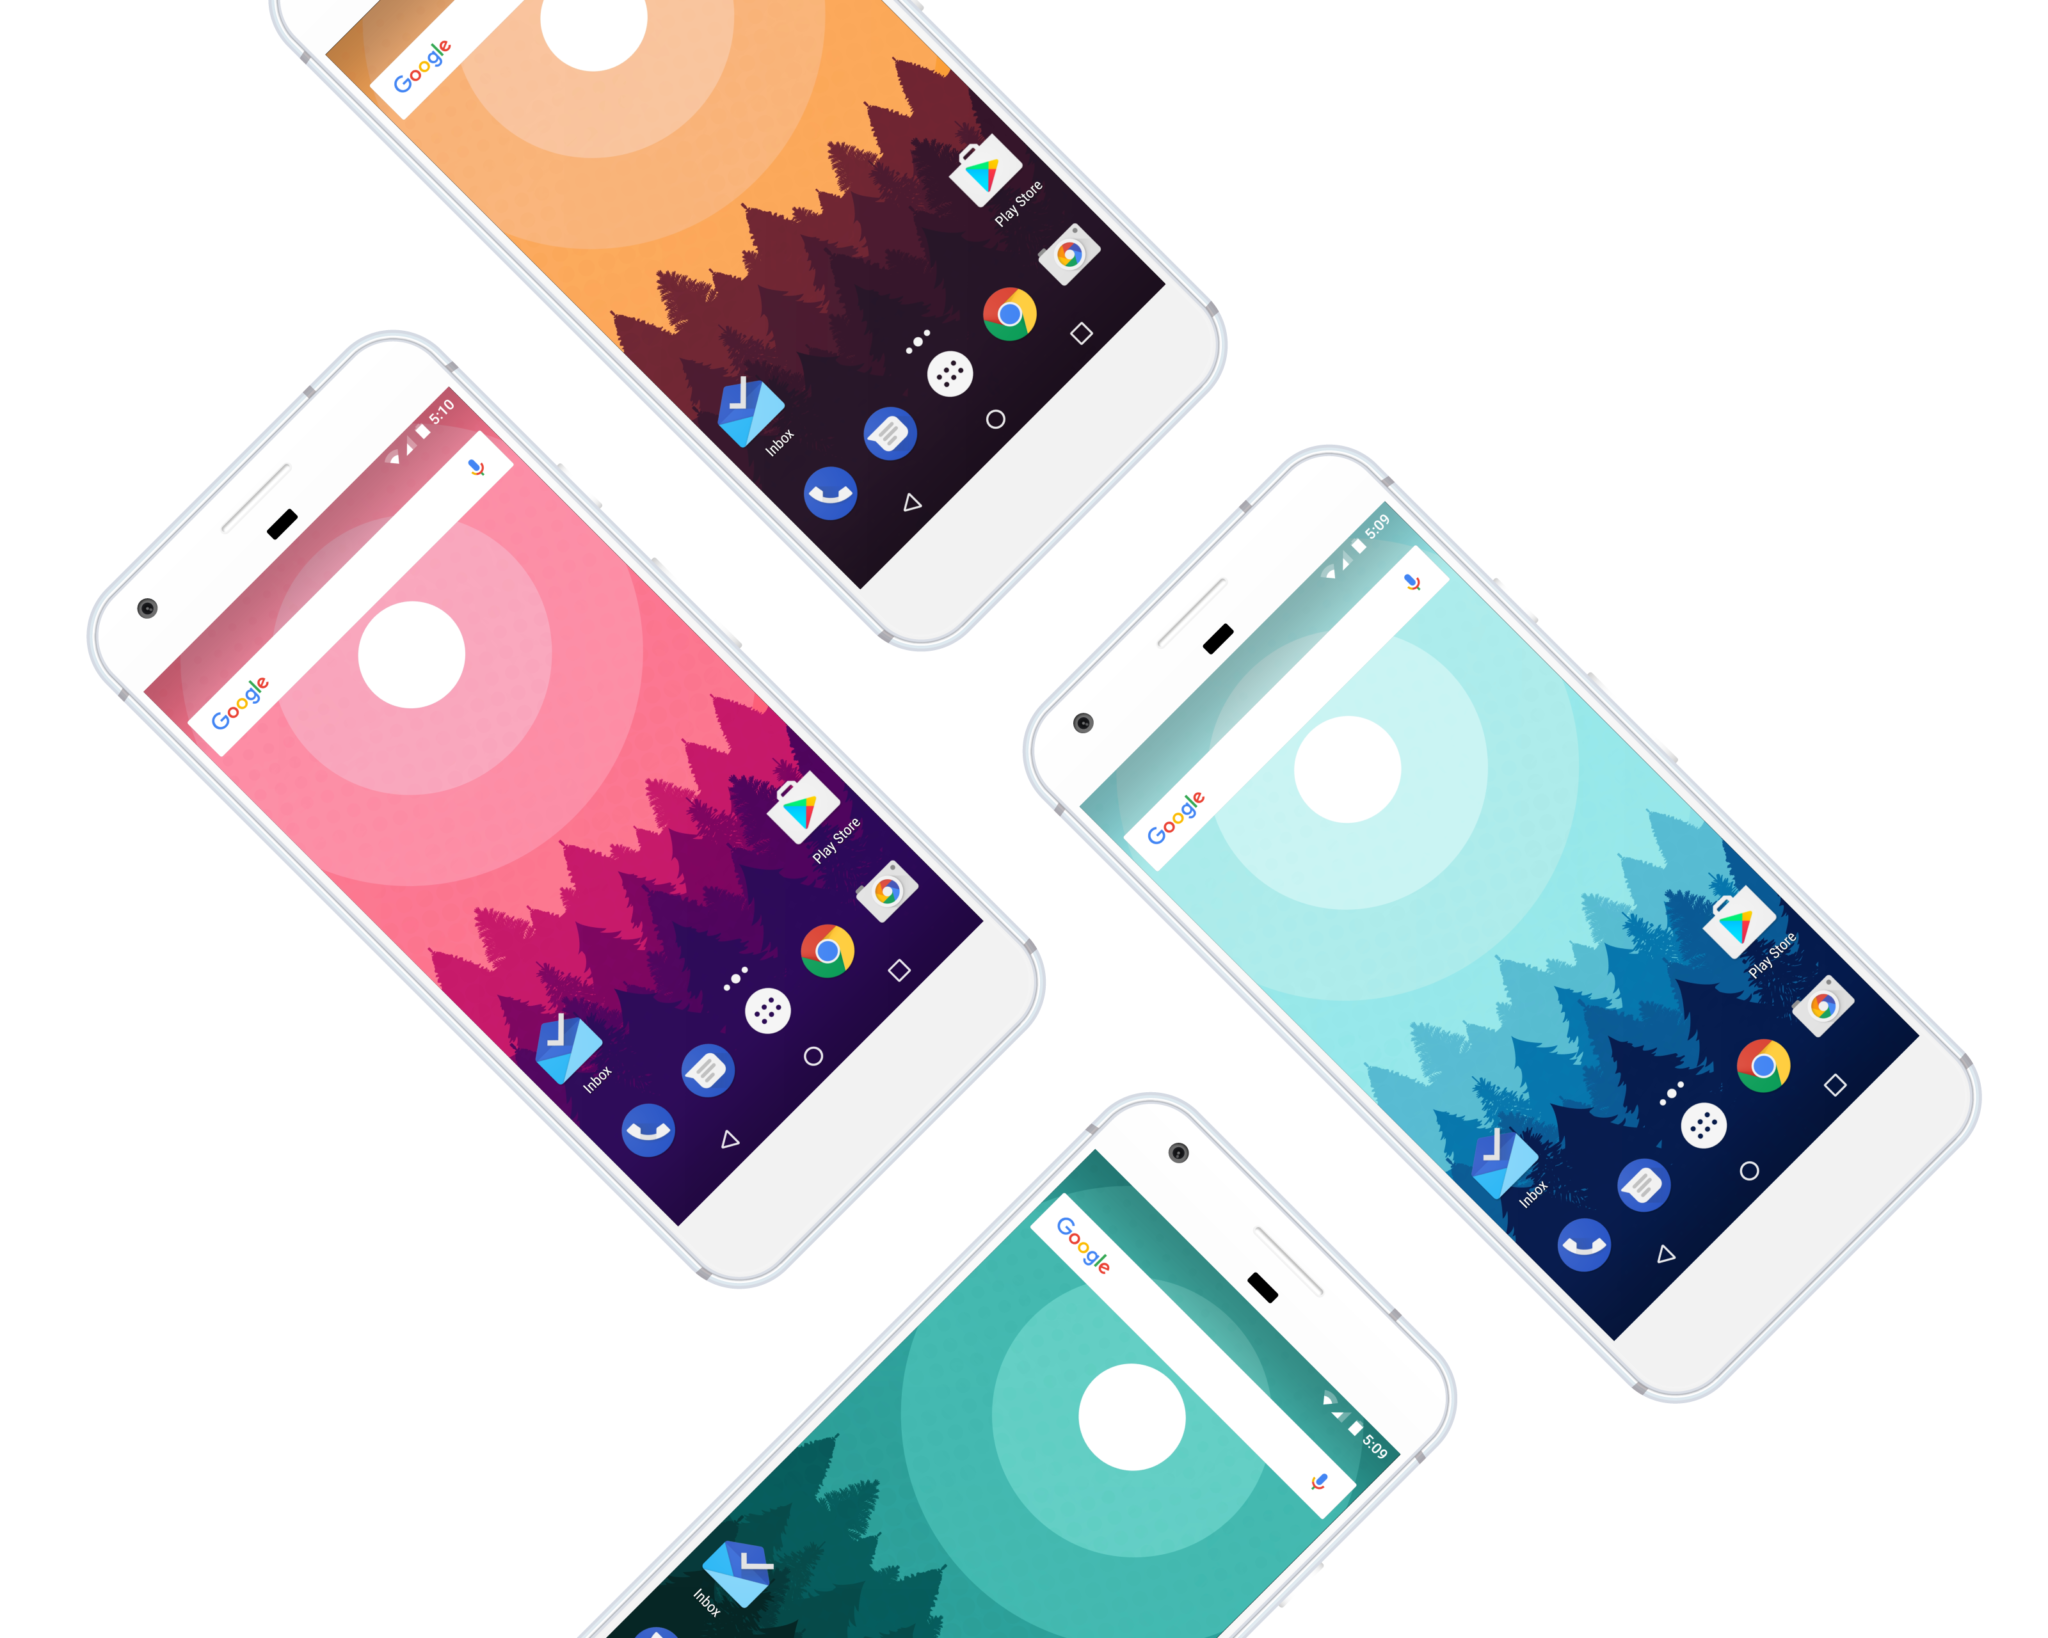 Boxy – Wallpapers